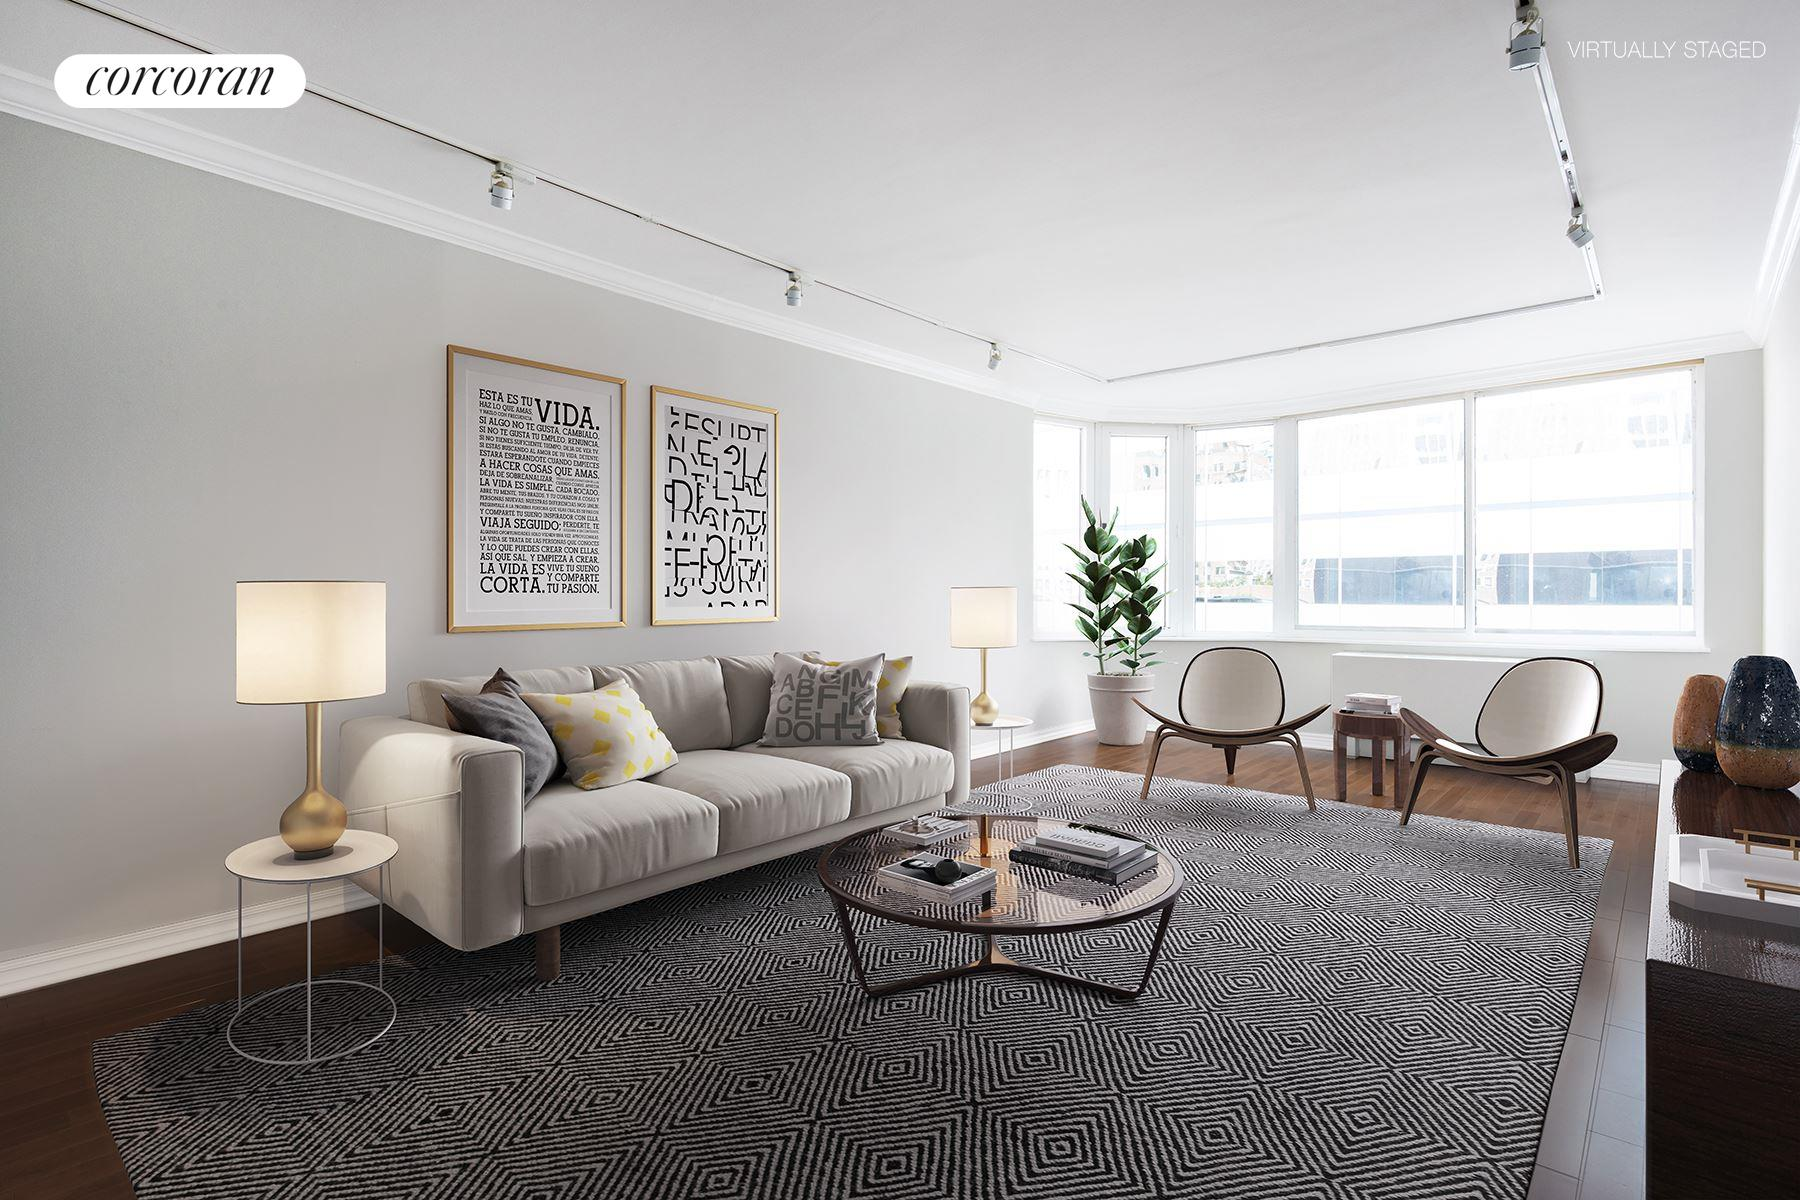 Corcoran, 275 Greenwich Street, Apt. 10A, Tribeca Real Estate ...